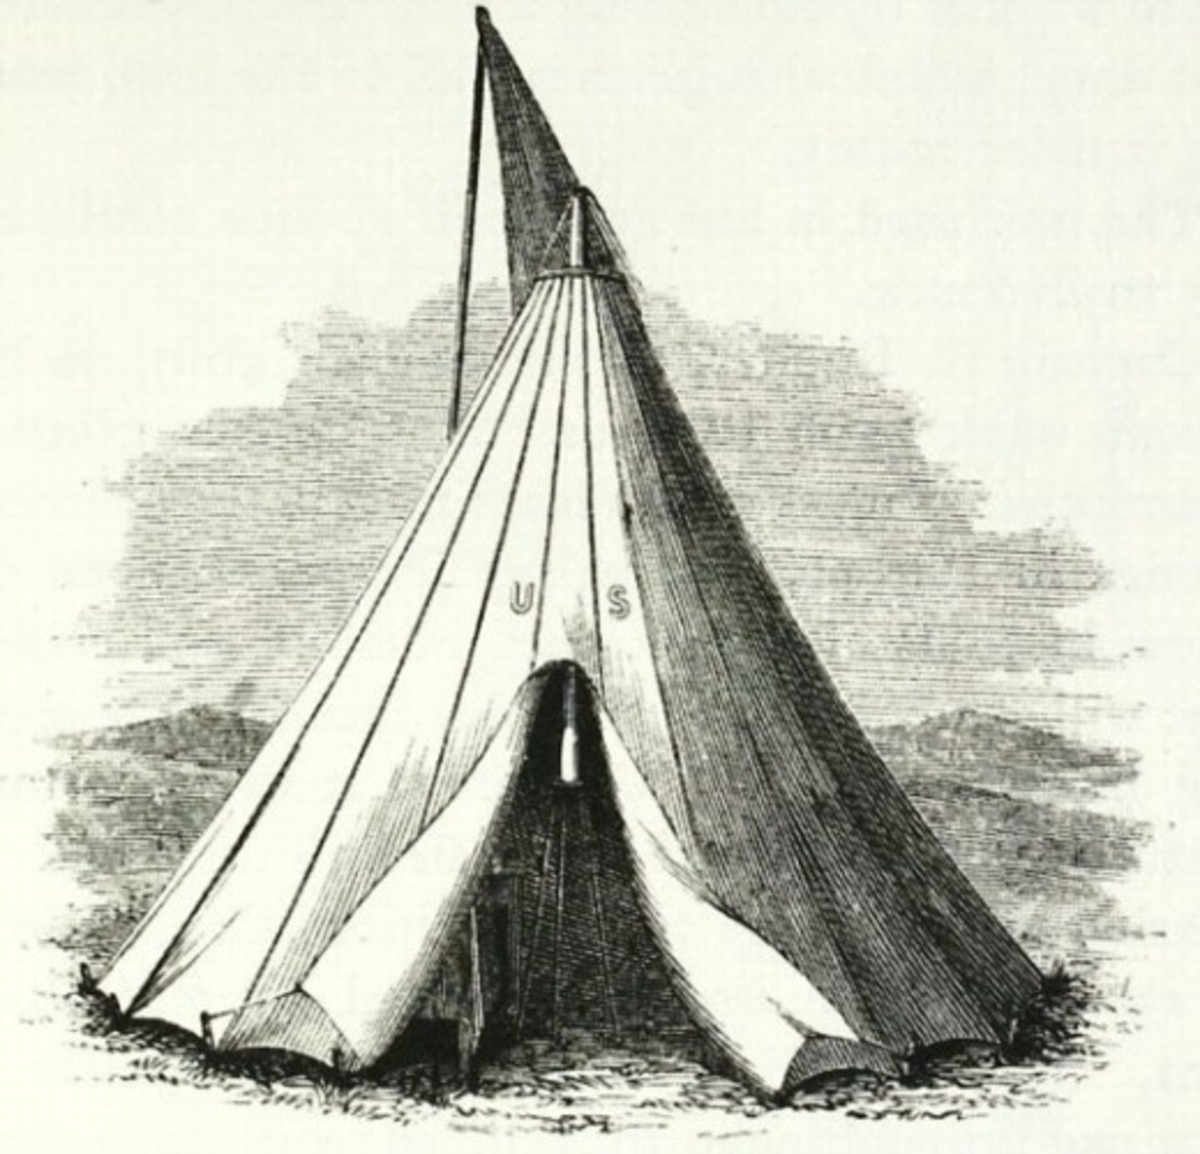 Illustration of a Sibley Tent. Note the top flap from which protrudes a stove pipe